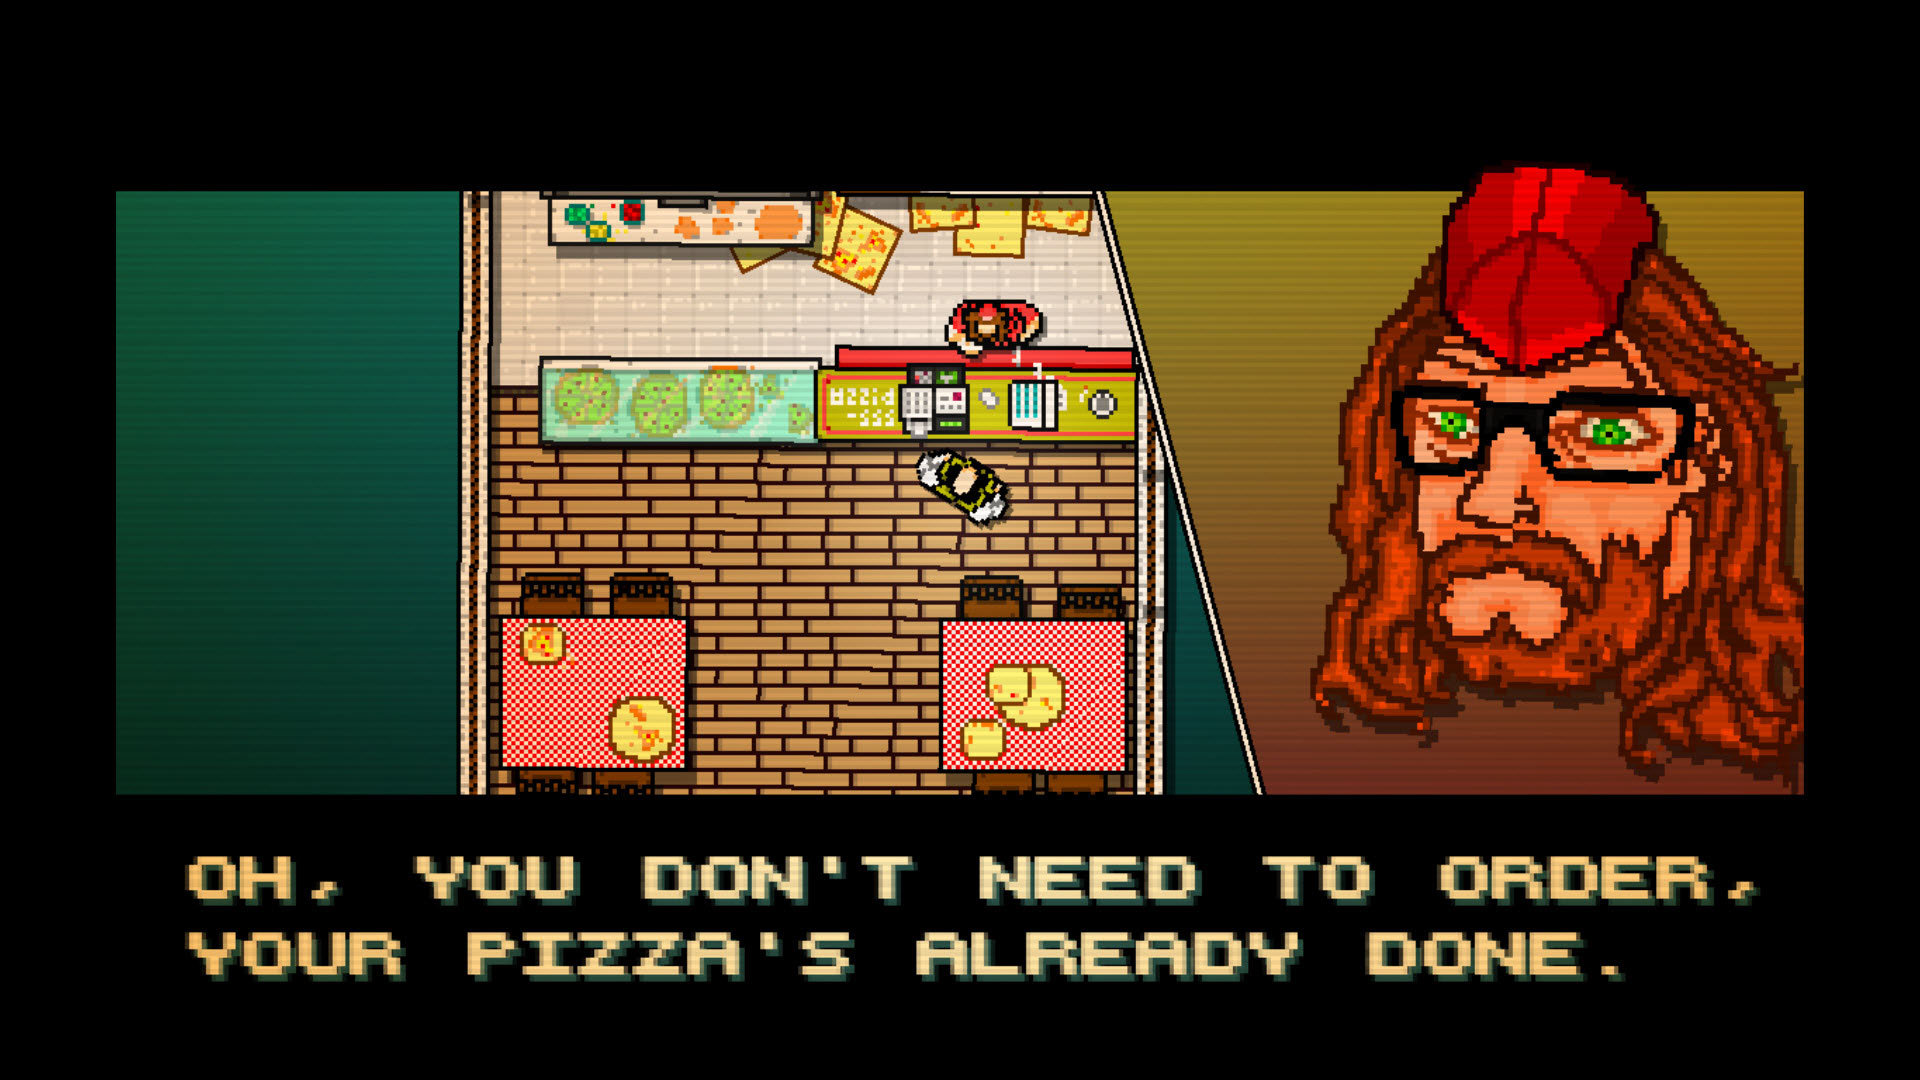 Hotline miami dating service